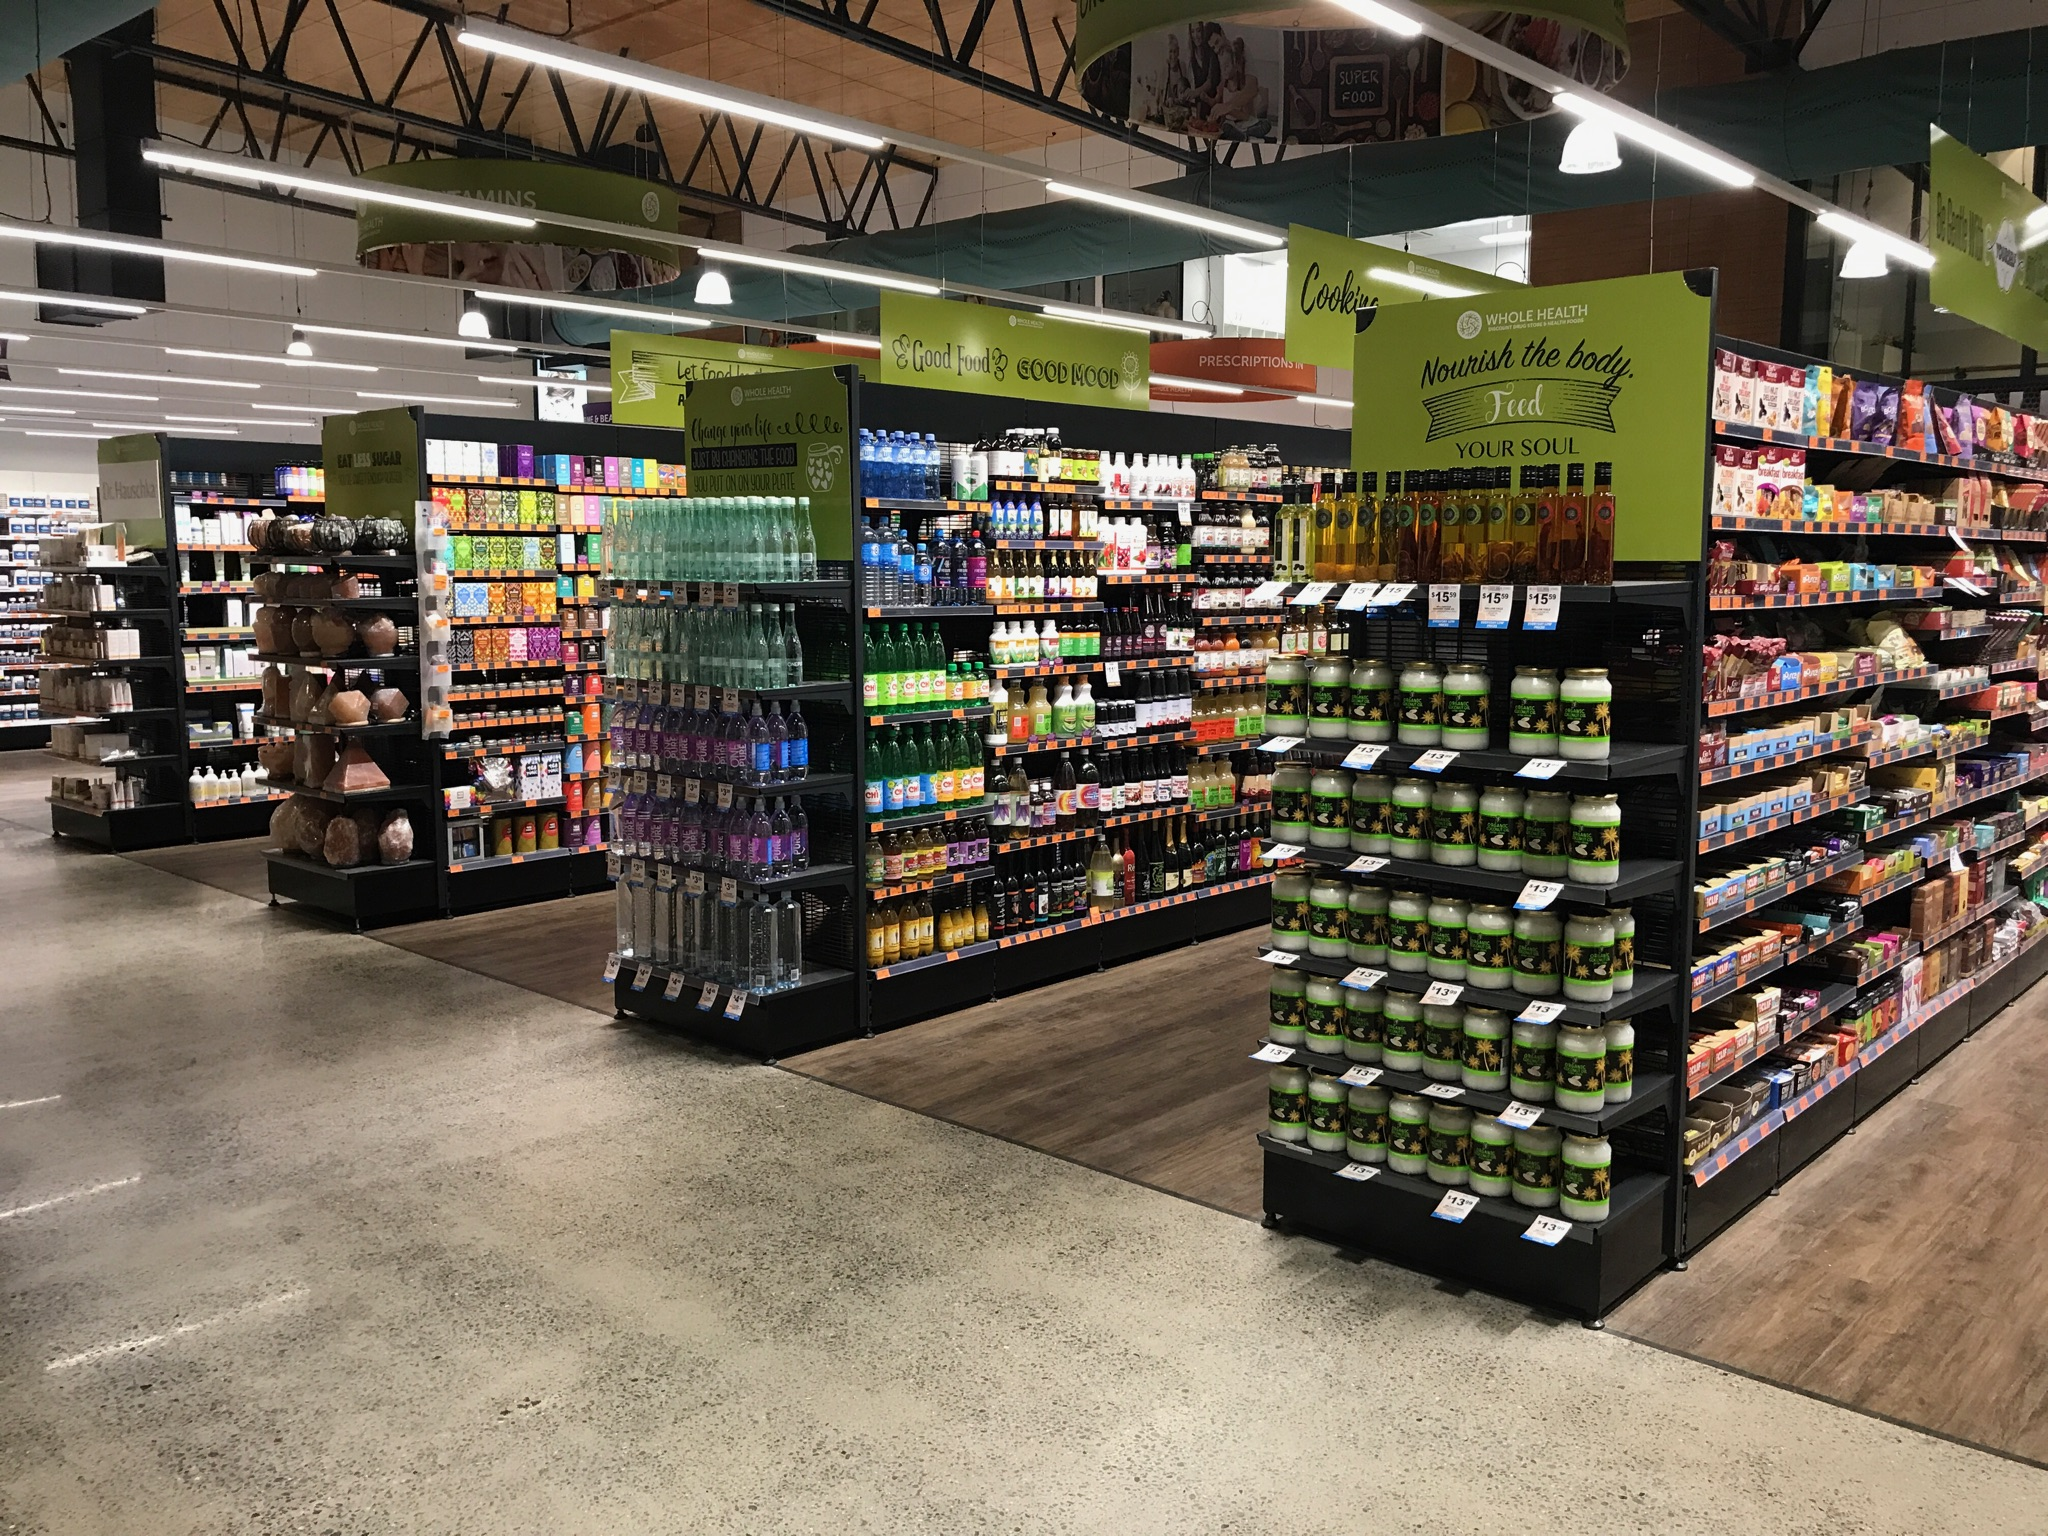 Brisbane's healthcare market set to expand with a new holistic pharmacy brand